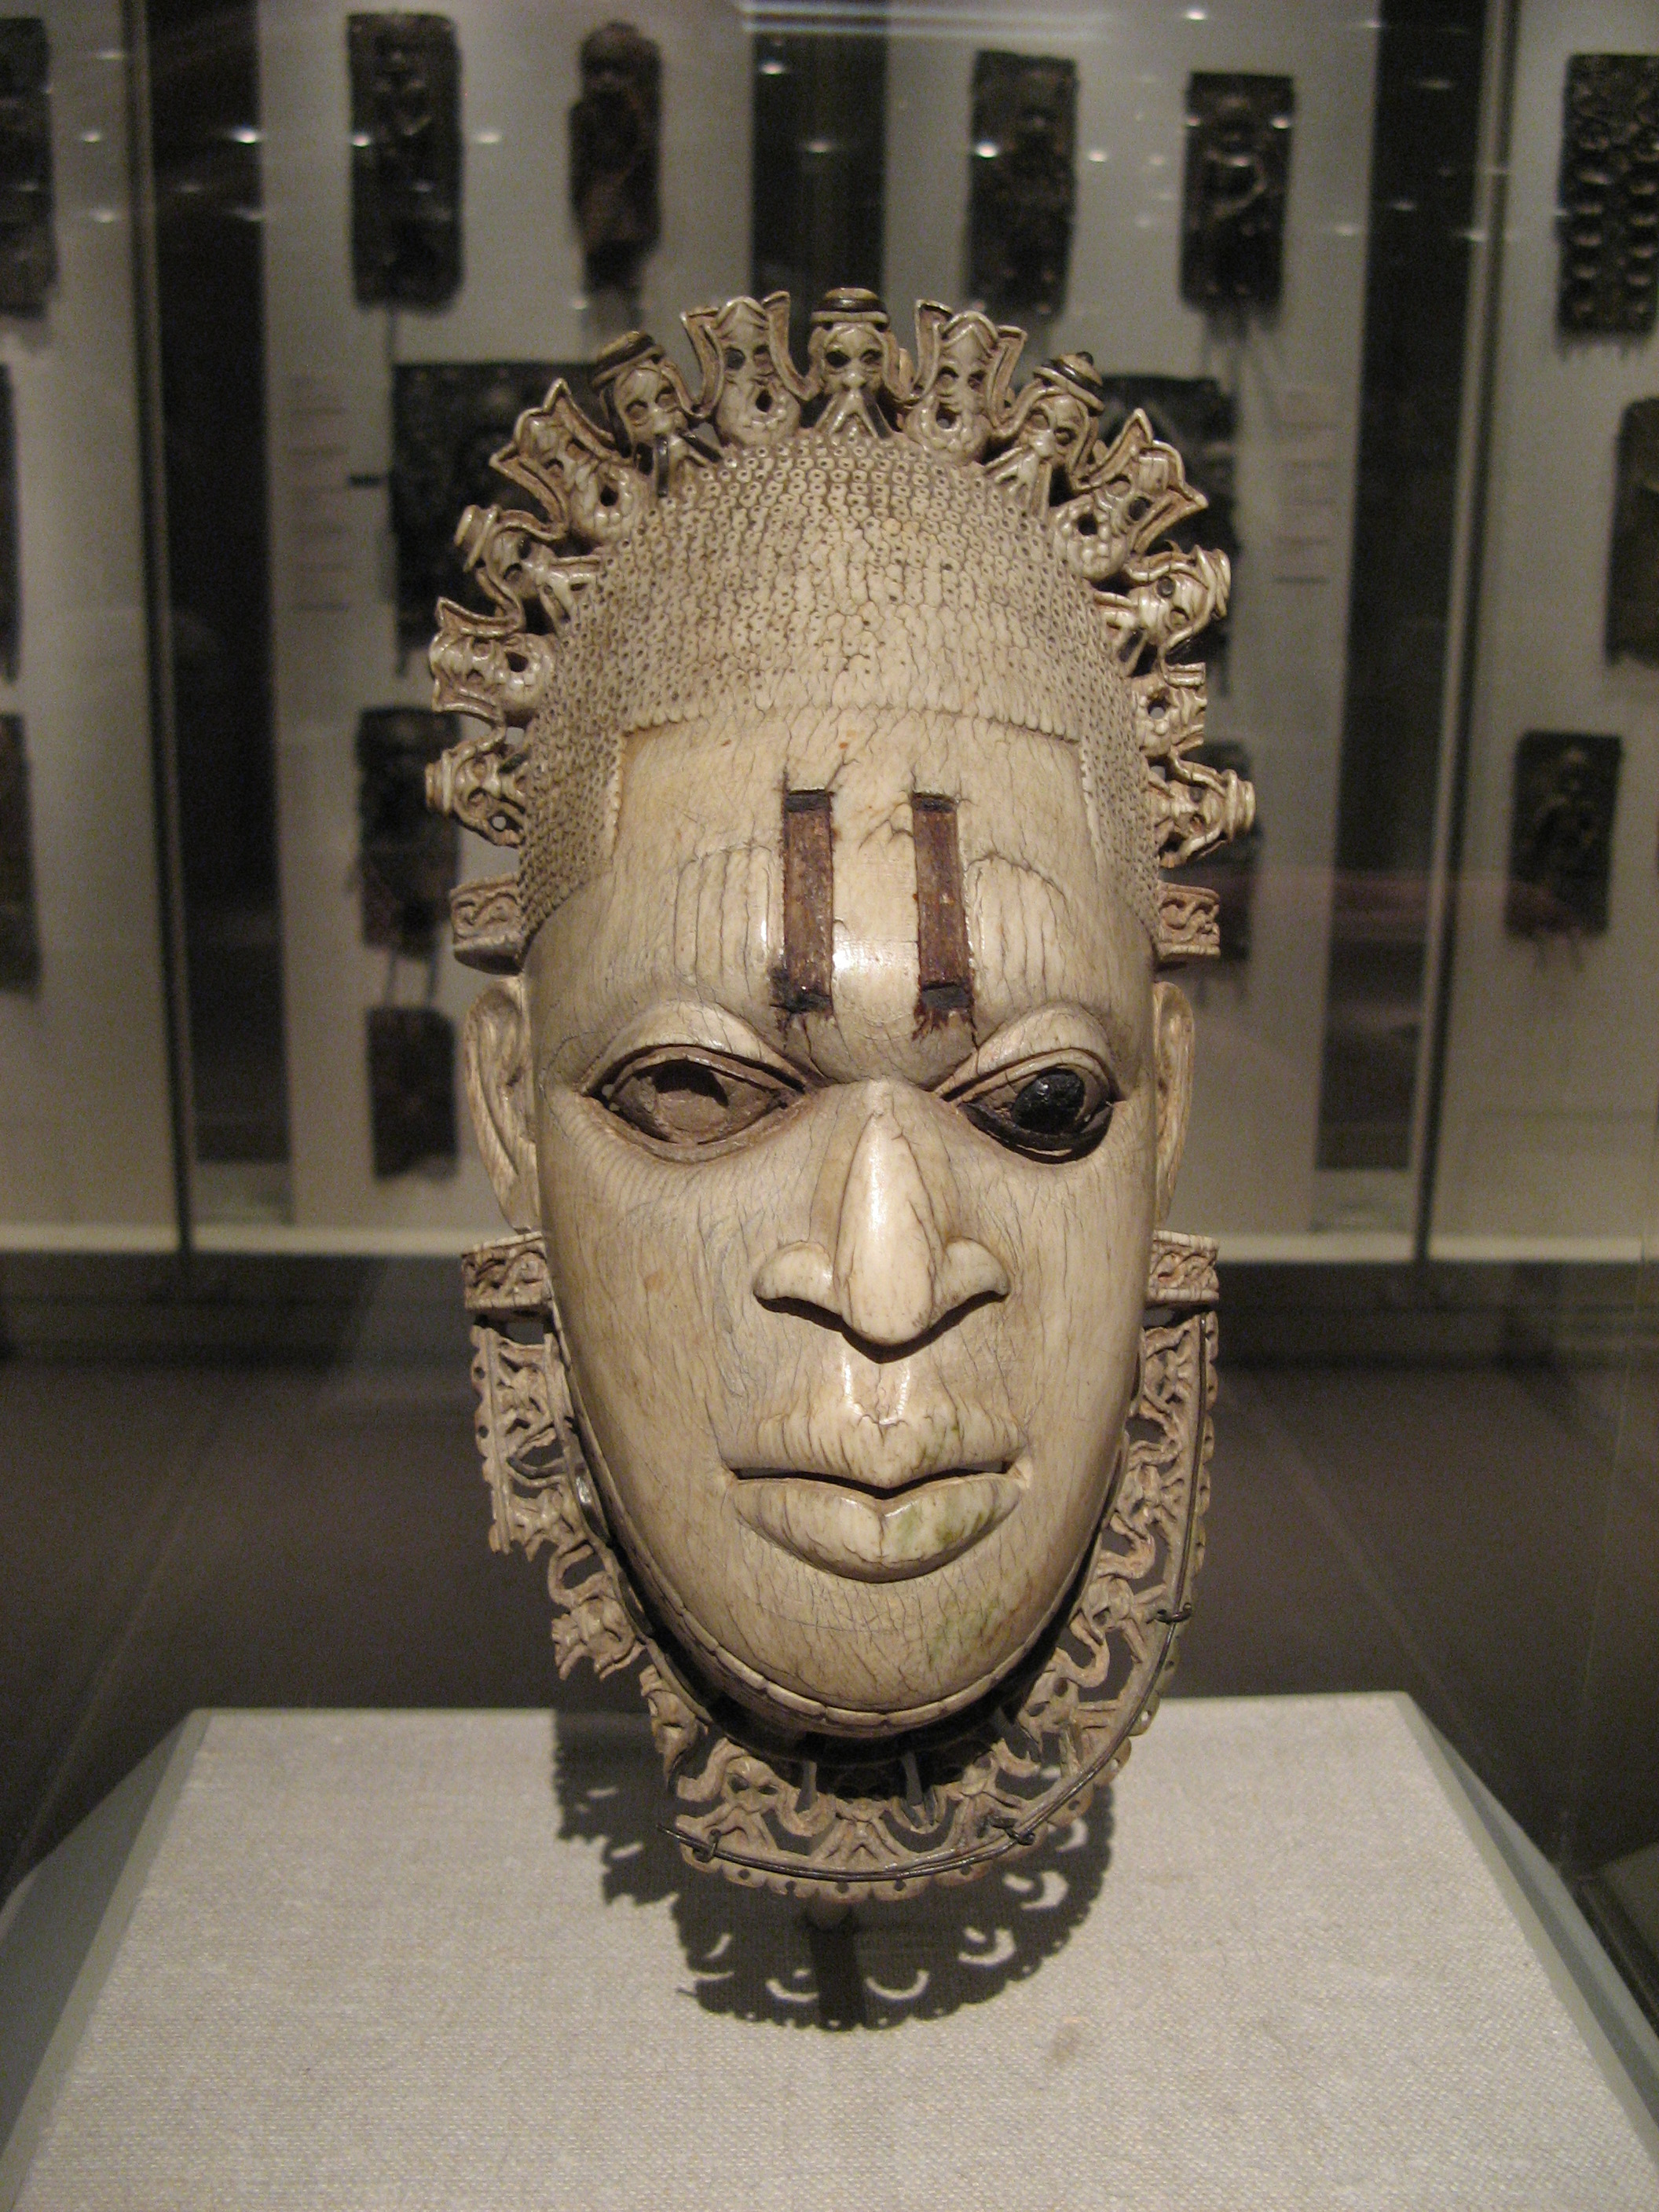 Nigeria: Controversy Over the Sale of Stolen Benin Mask · Global Voices